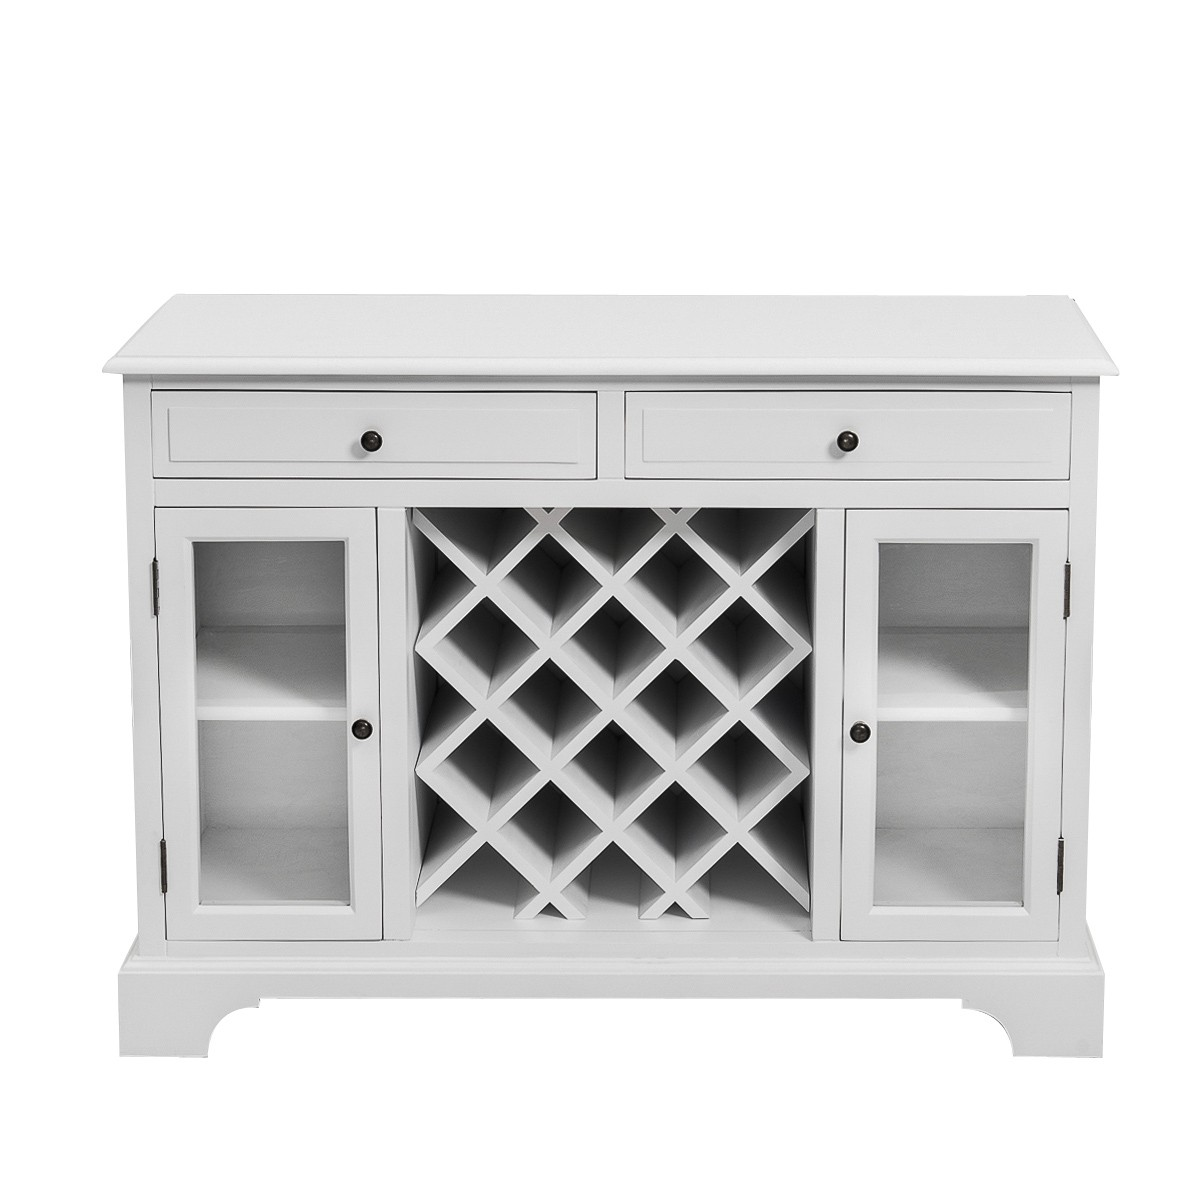 Hamptons Modern 2 Drawer 2 Glass Door Wine Rack Sideboard Buffet Cabinet White Wholesales Direct